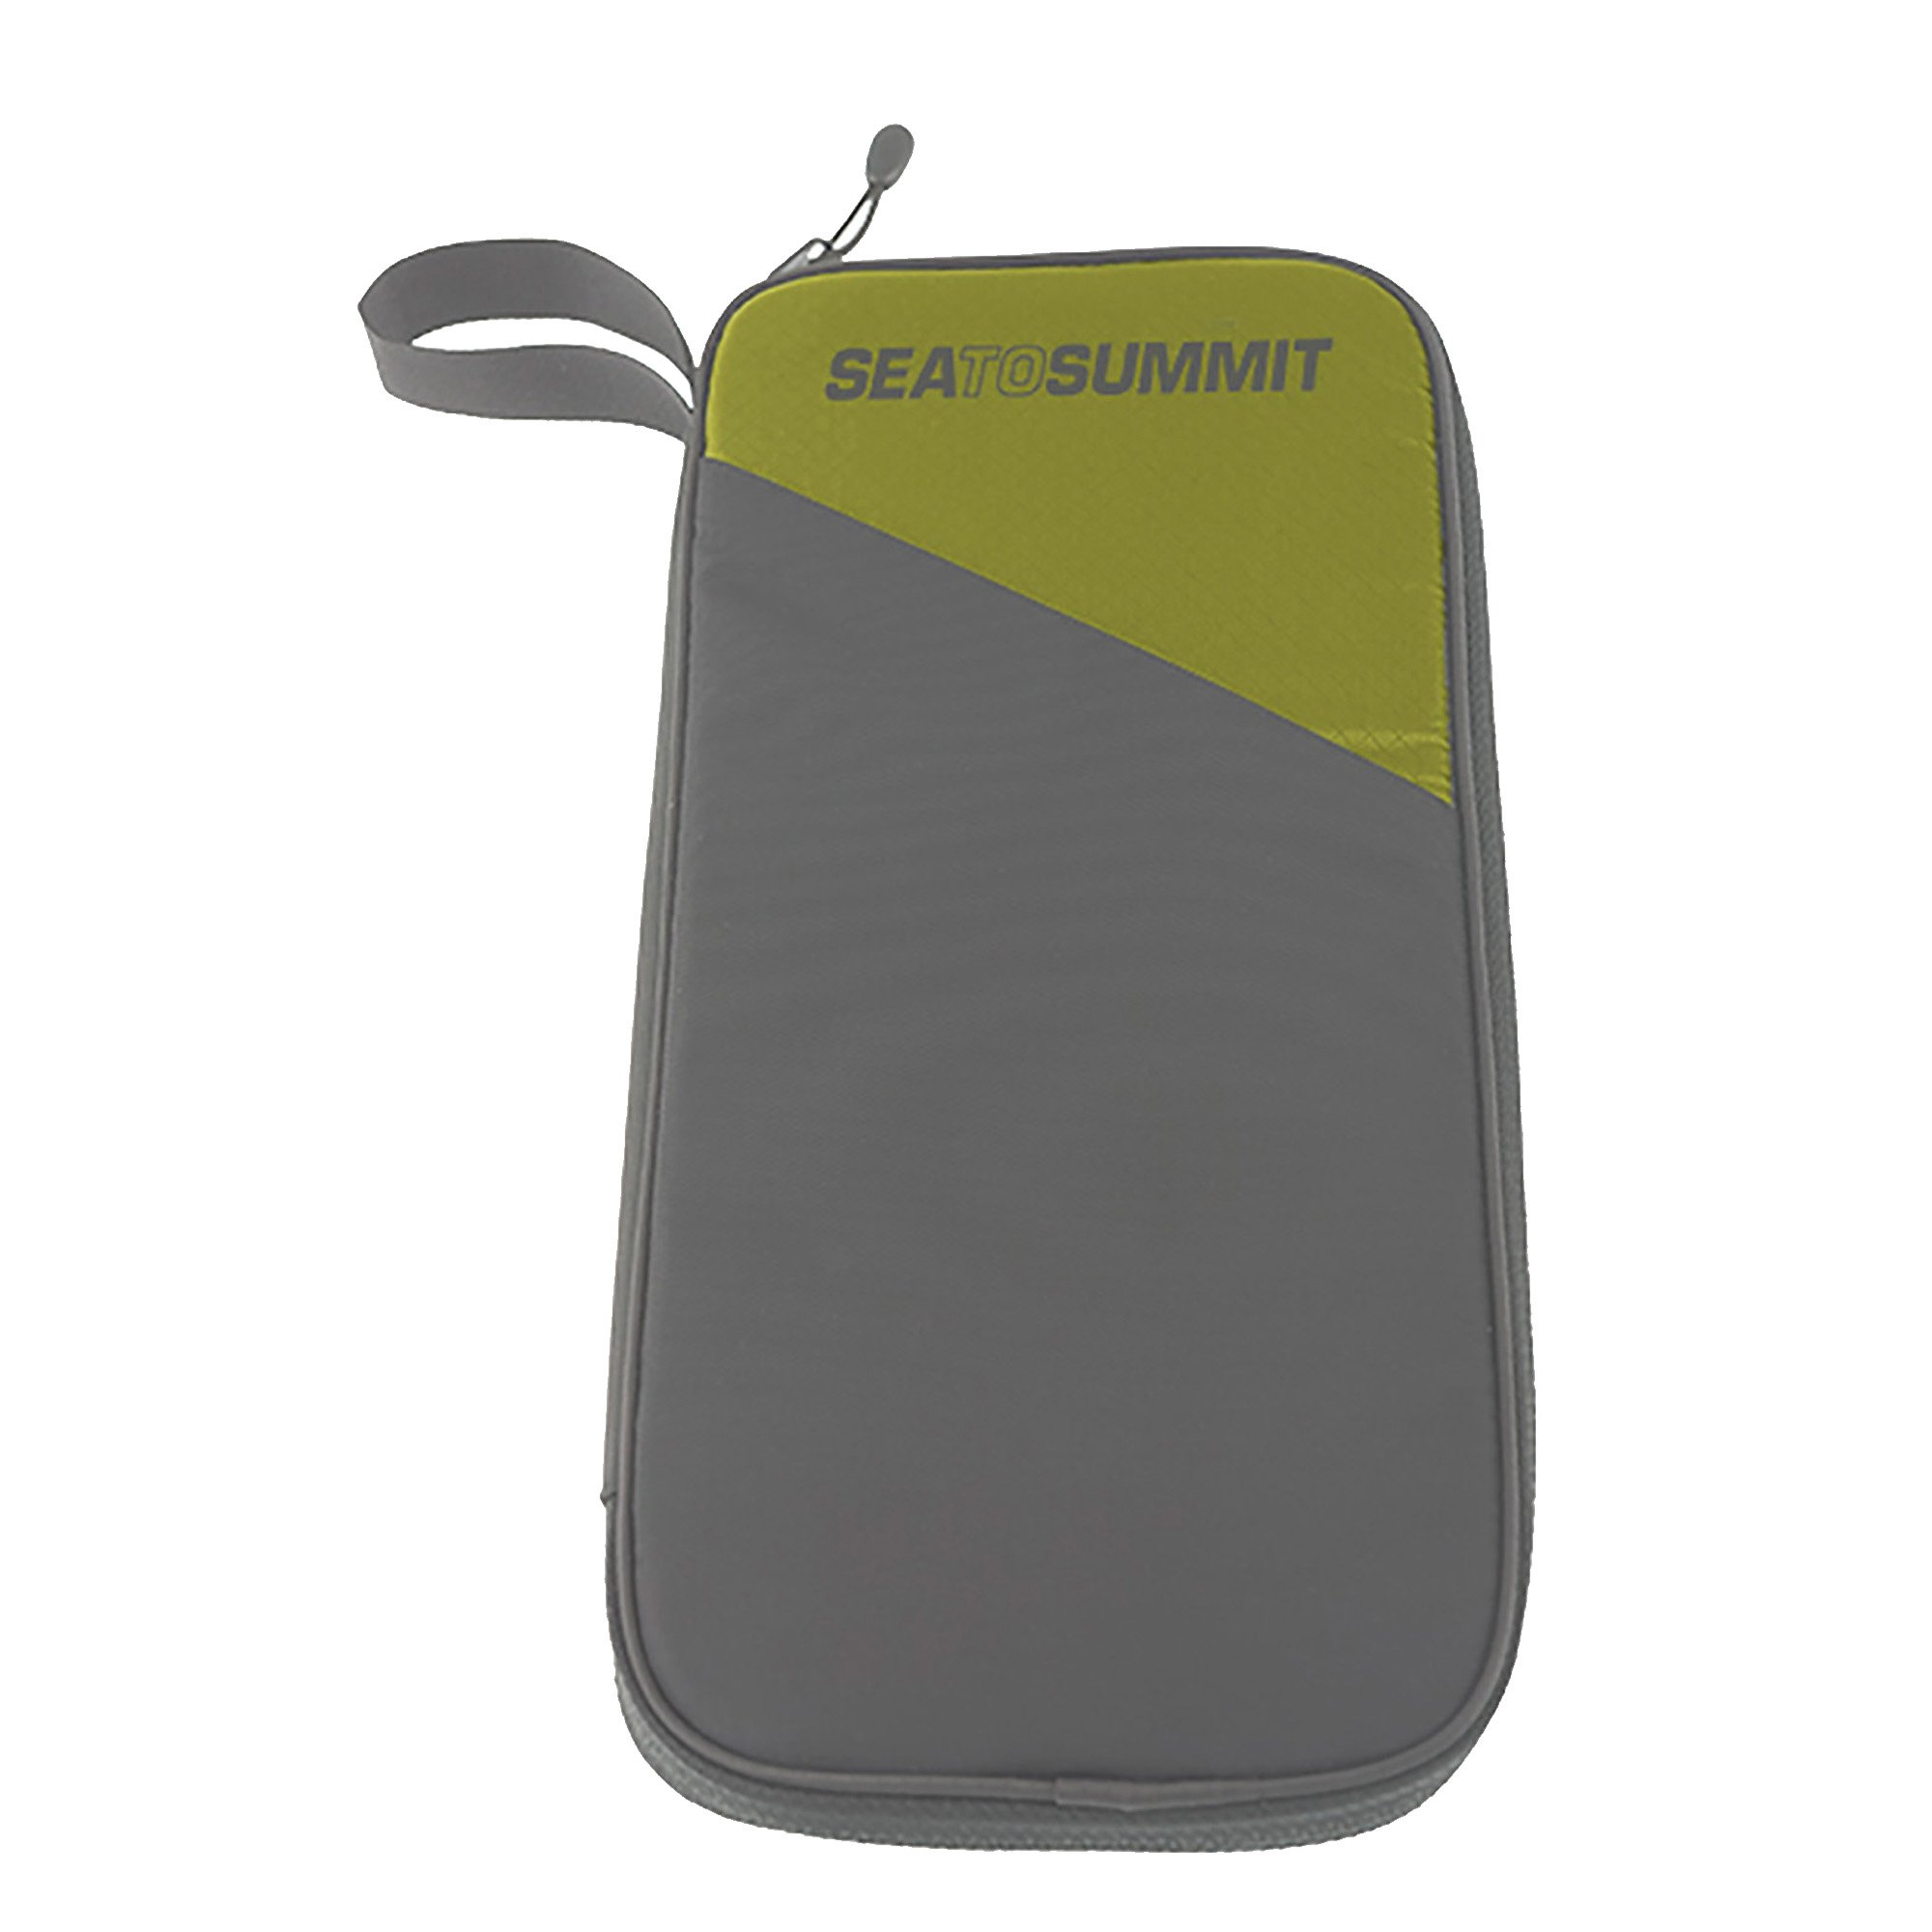 Sea to Summit Travelling Light RFID Travel Wallet - Lime Large by Sea to Summit